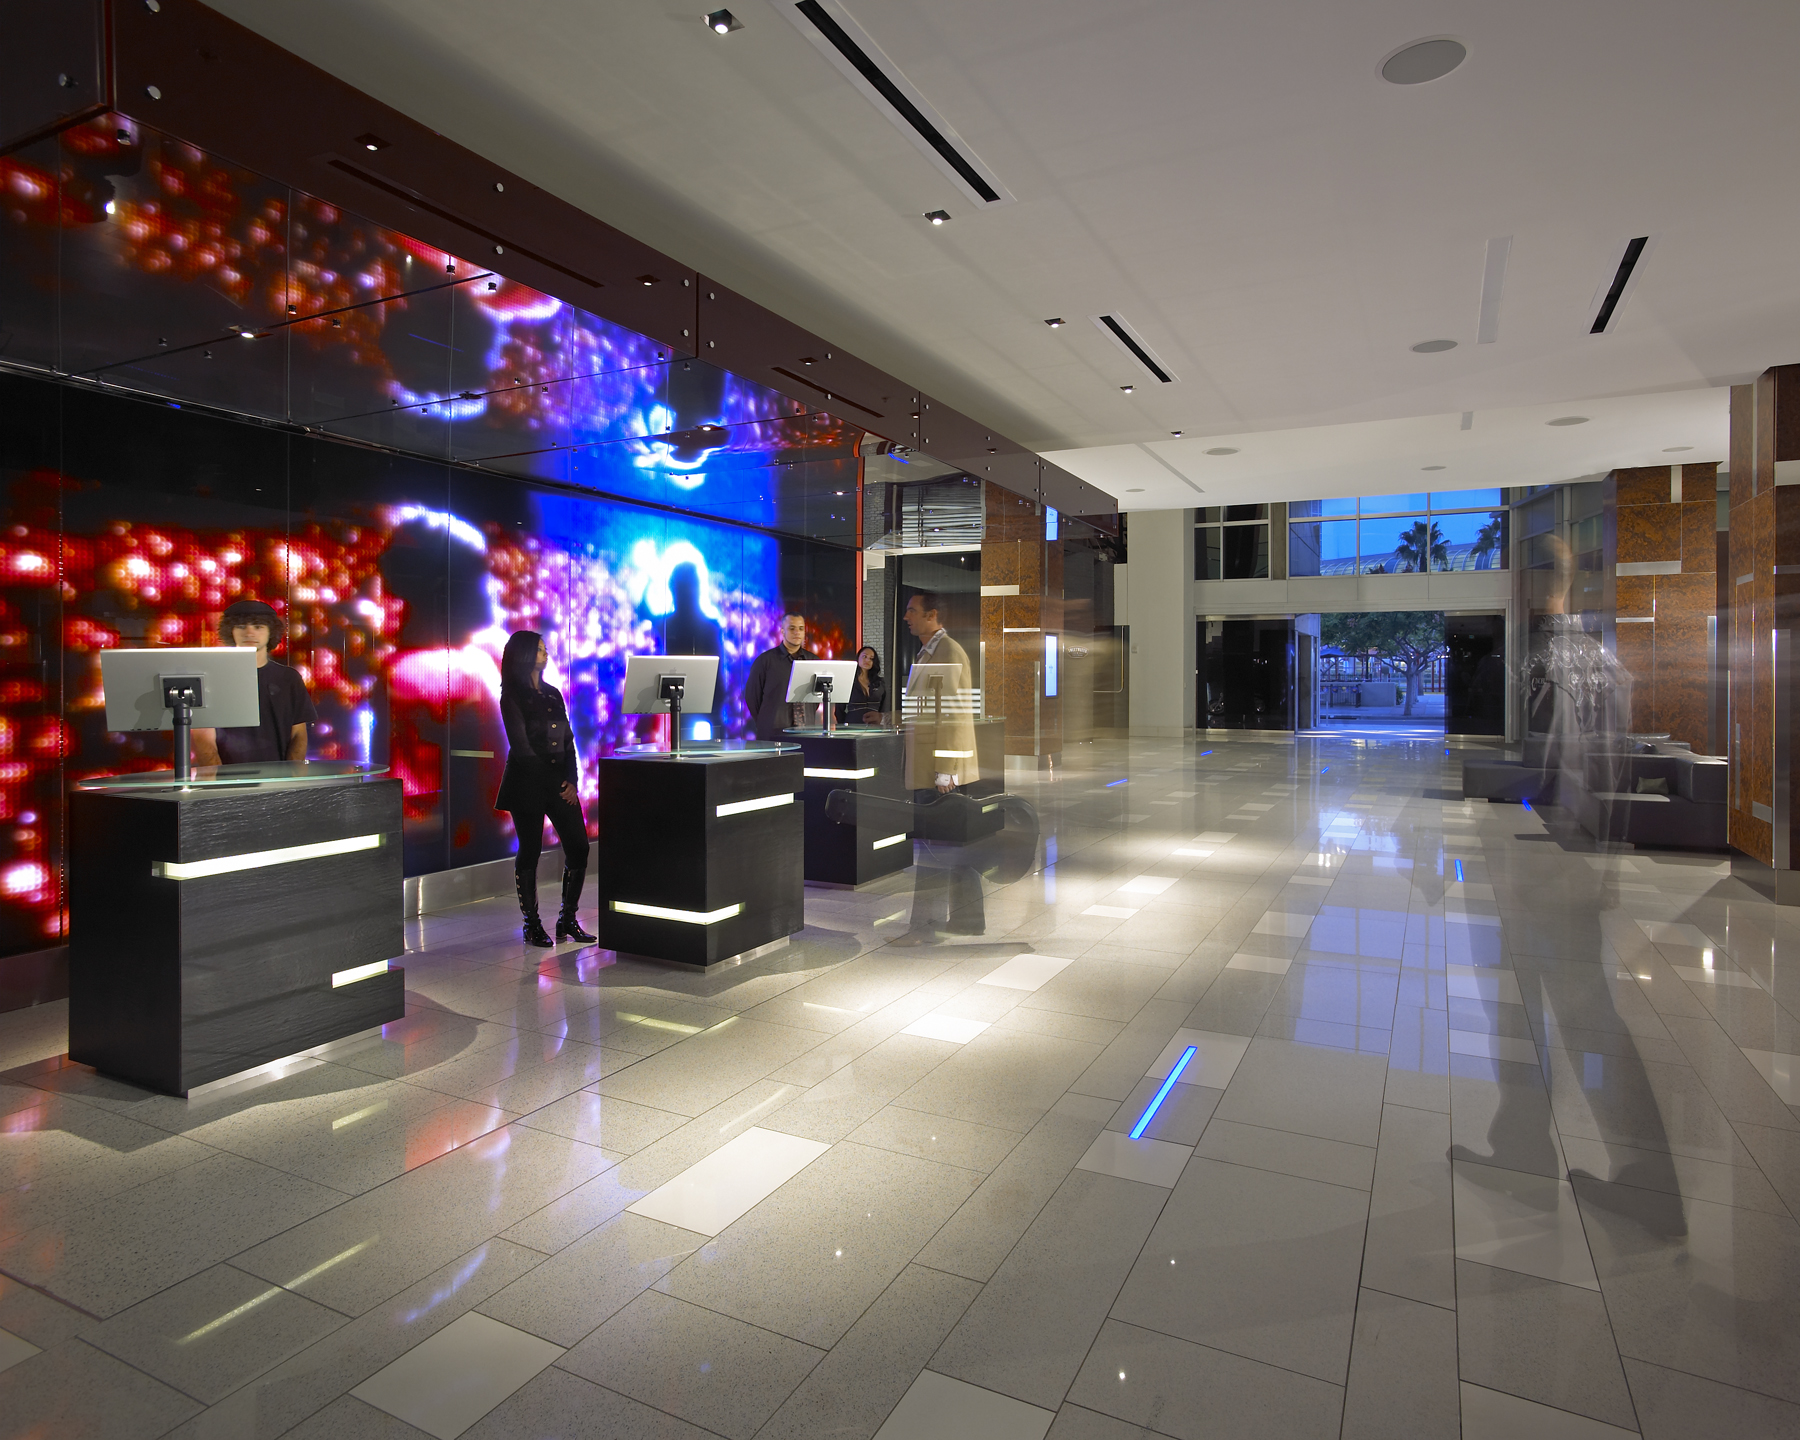 San Diego S Hard Rock Hotel Earns Coveted Aaa Four Diamond